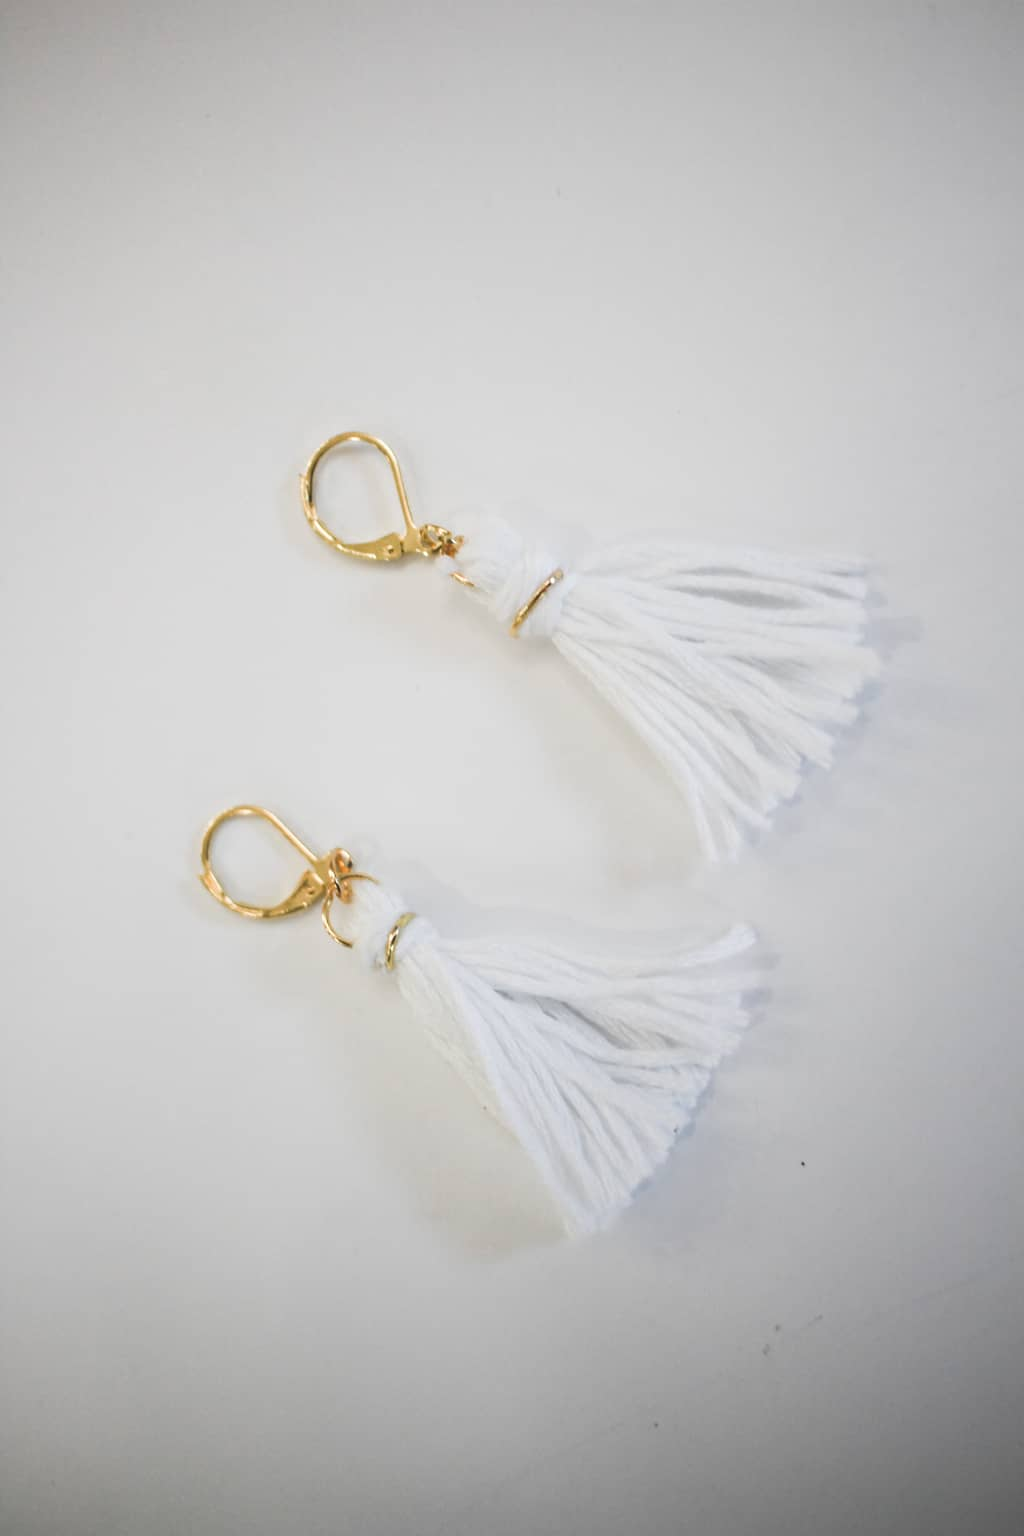 Don't splurge on tassel earrings when you can make a cute pair exactly how you'd like them!